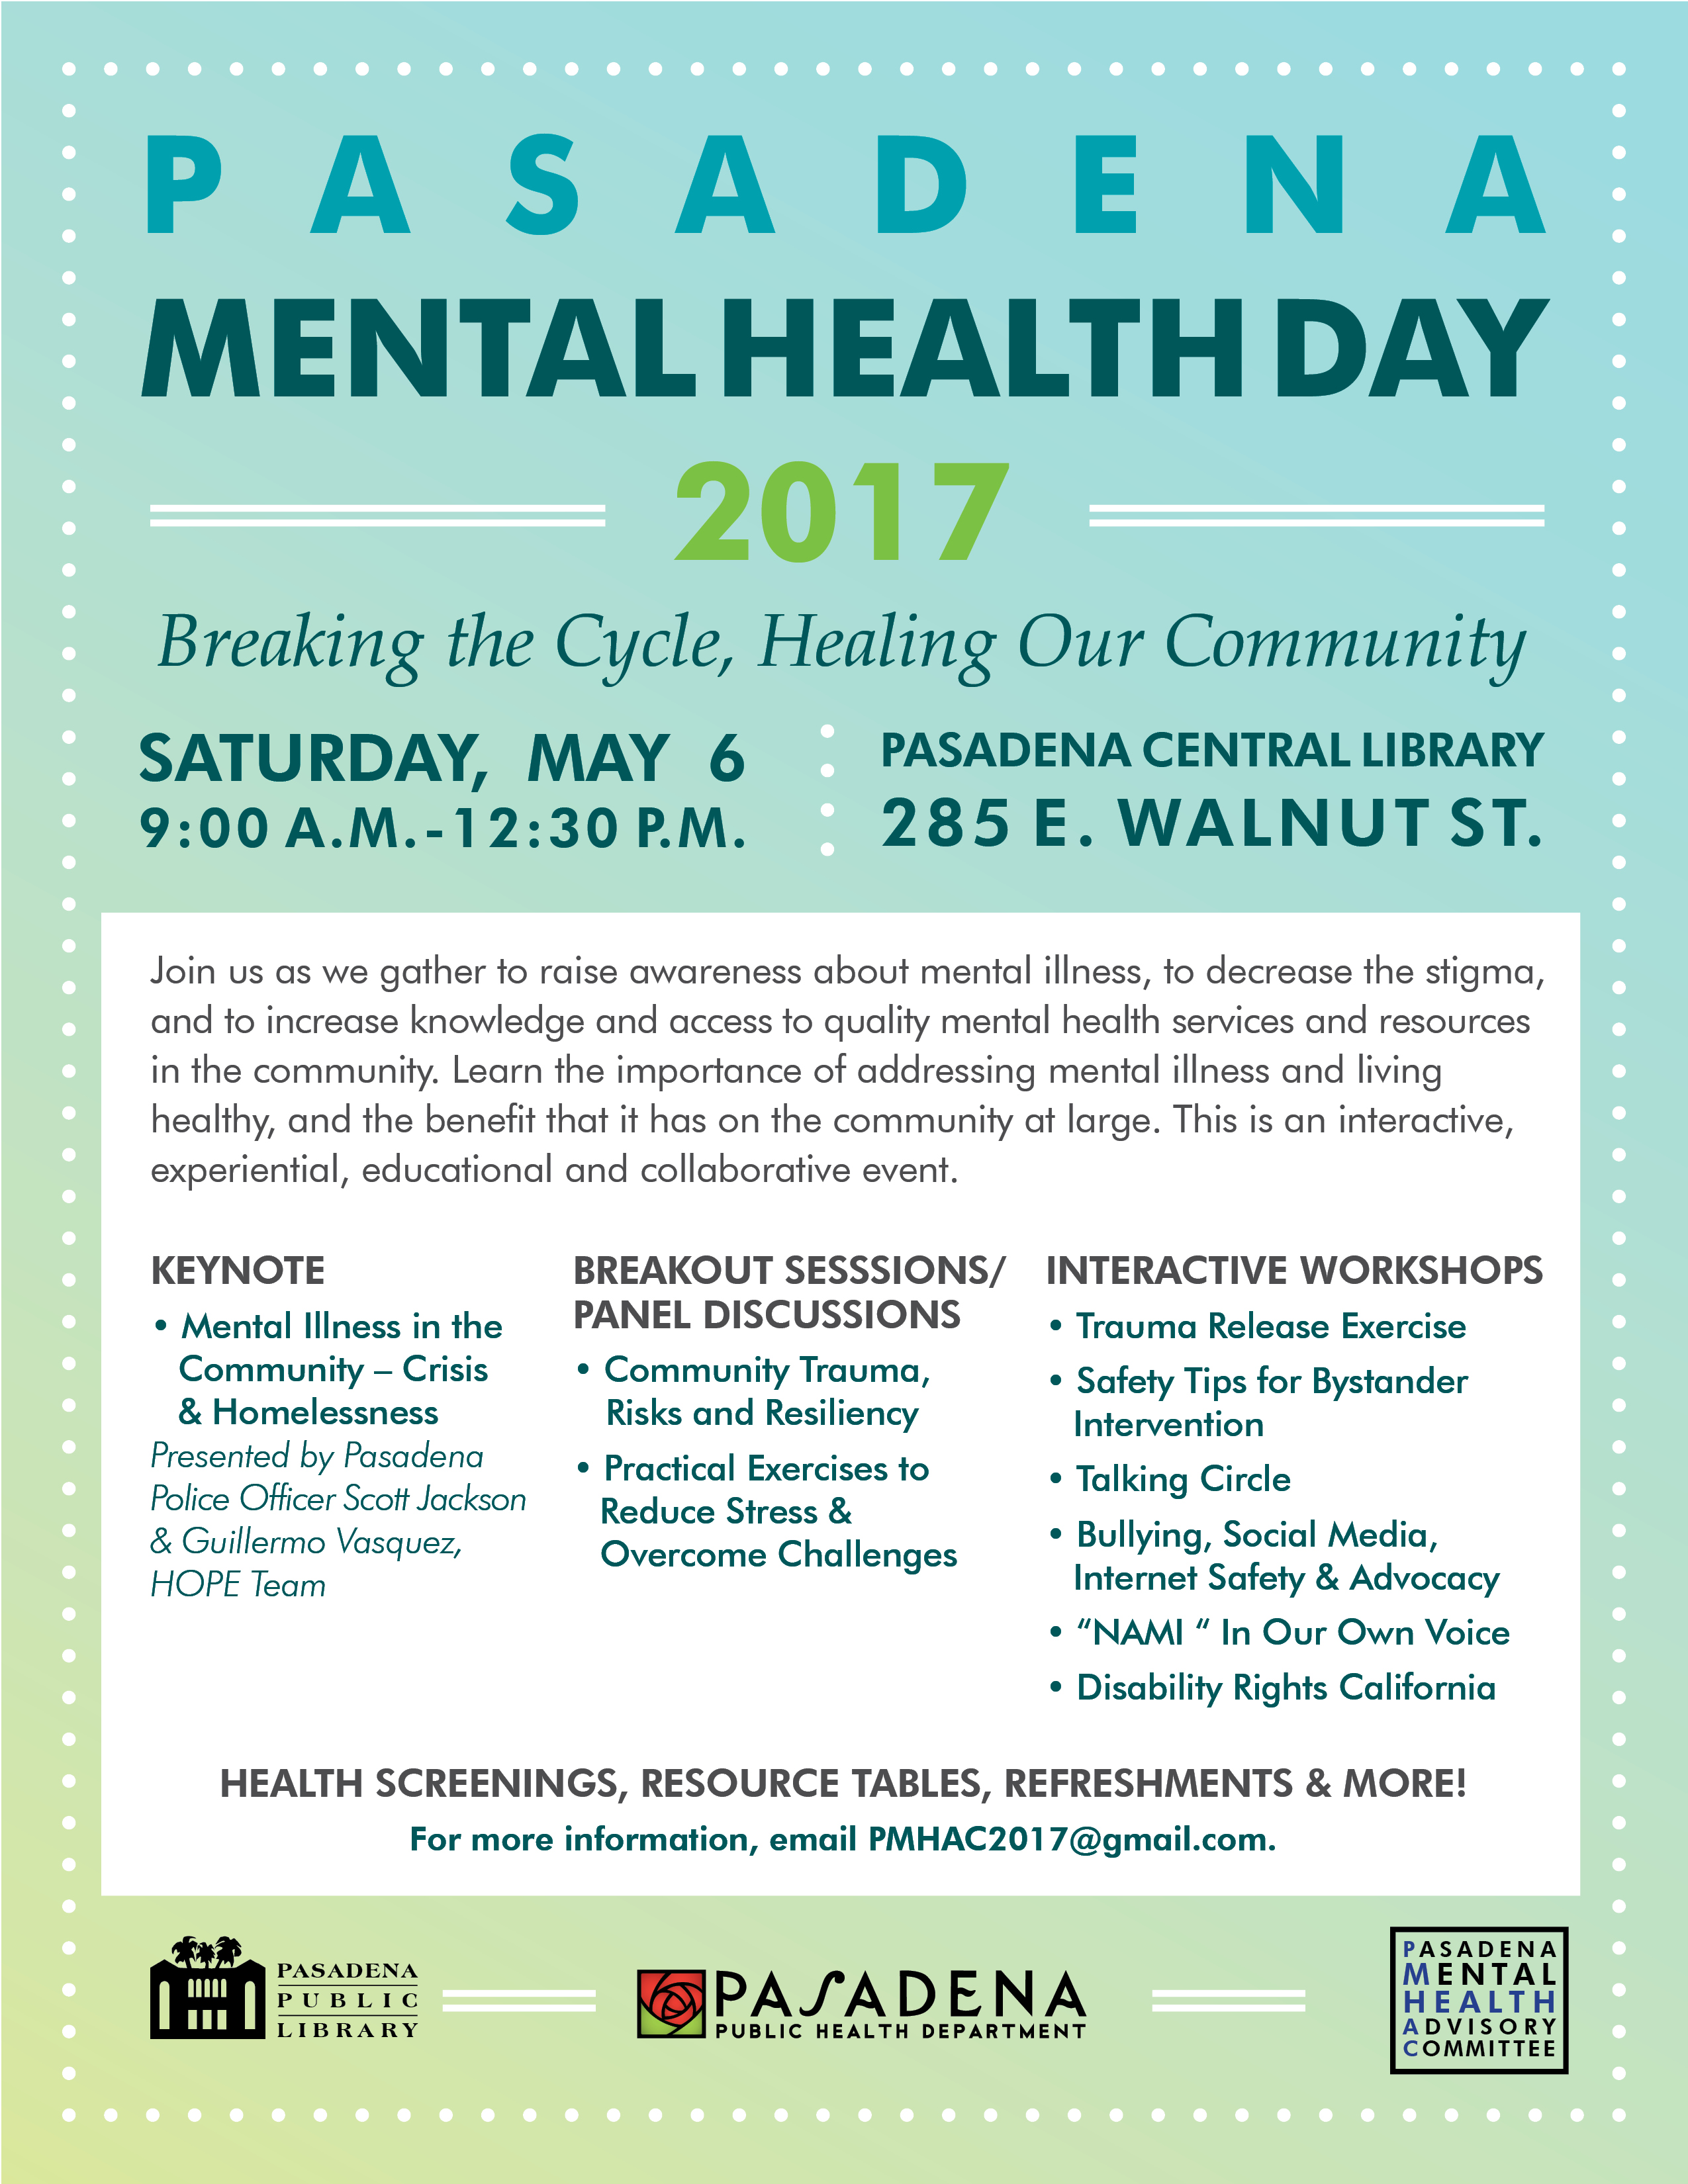 Mental Health Day 2017 Public Health Department